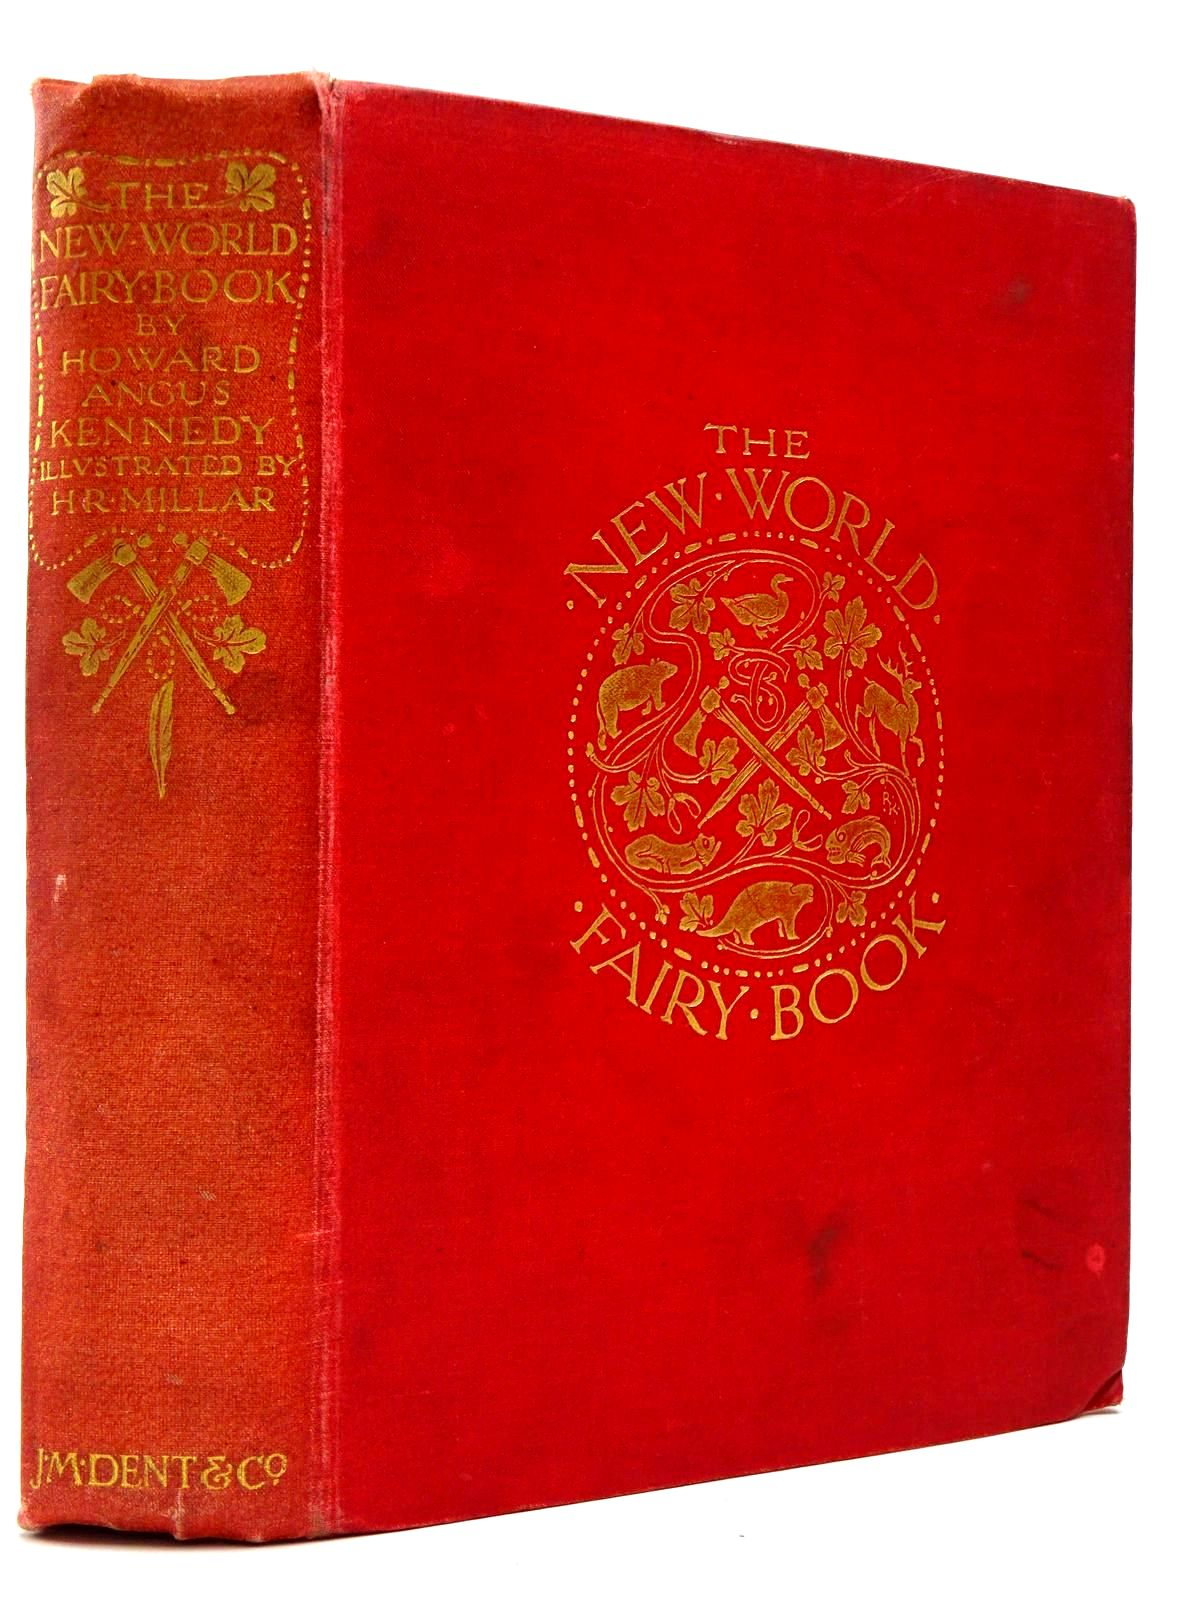 Photo of THE NEW WORLD FAIRY BOOK written by Kennedy, Howard Angus illustrated by Millar, H.R. published by J.M. Dent & Co. (STOCK CODE: 2129852)  for sale by Stella & Rose's Books